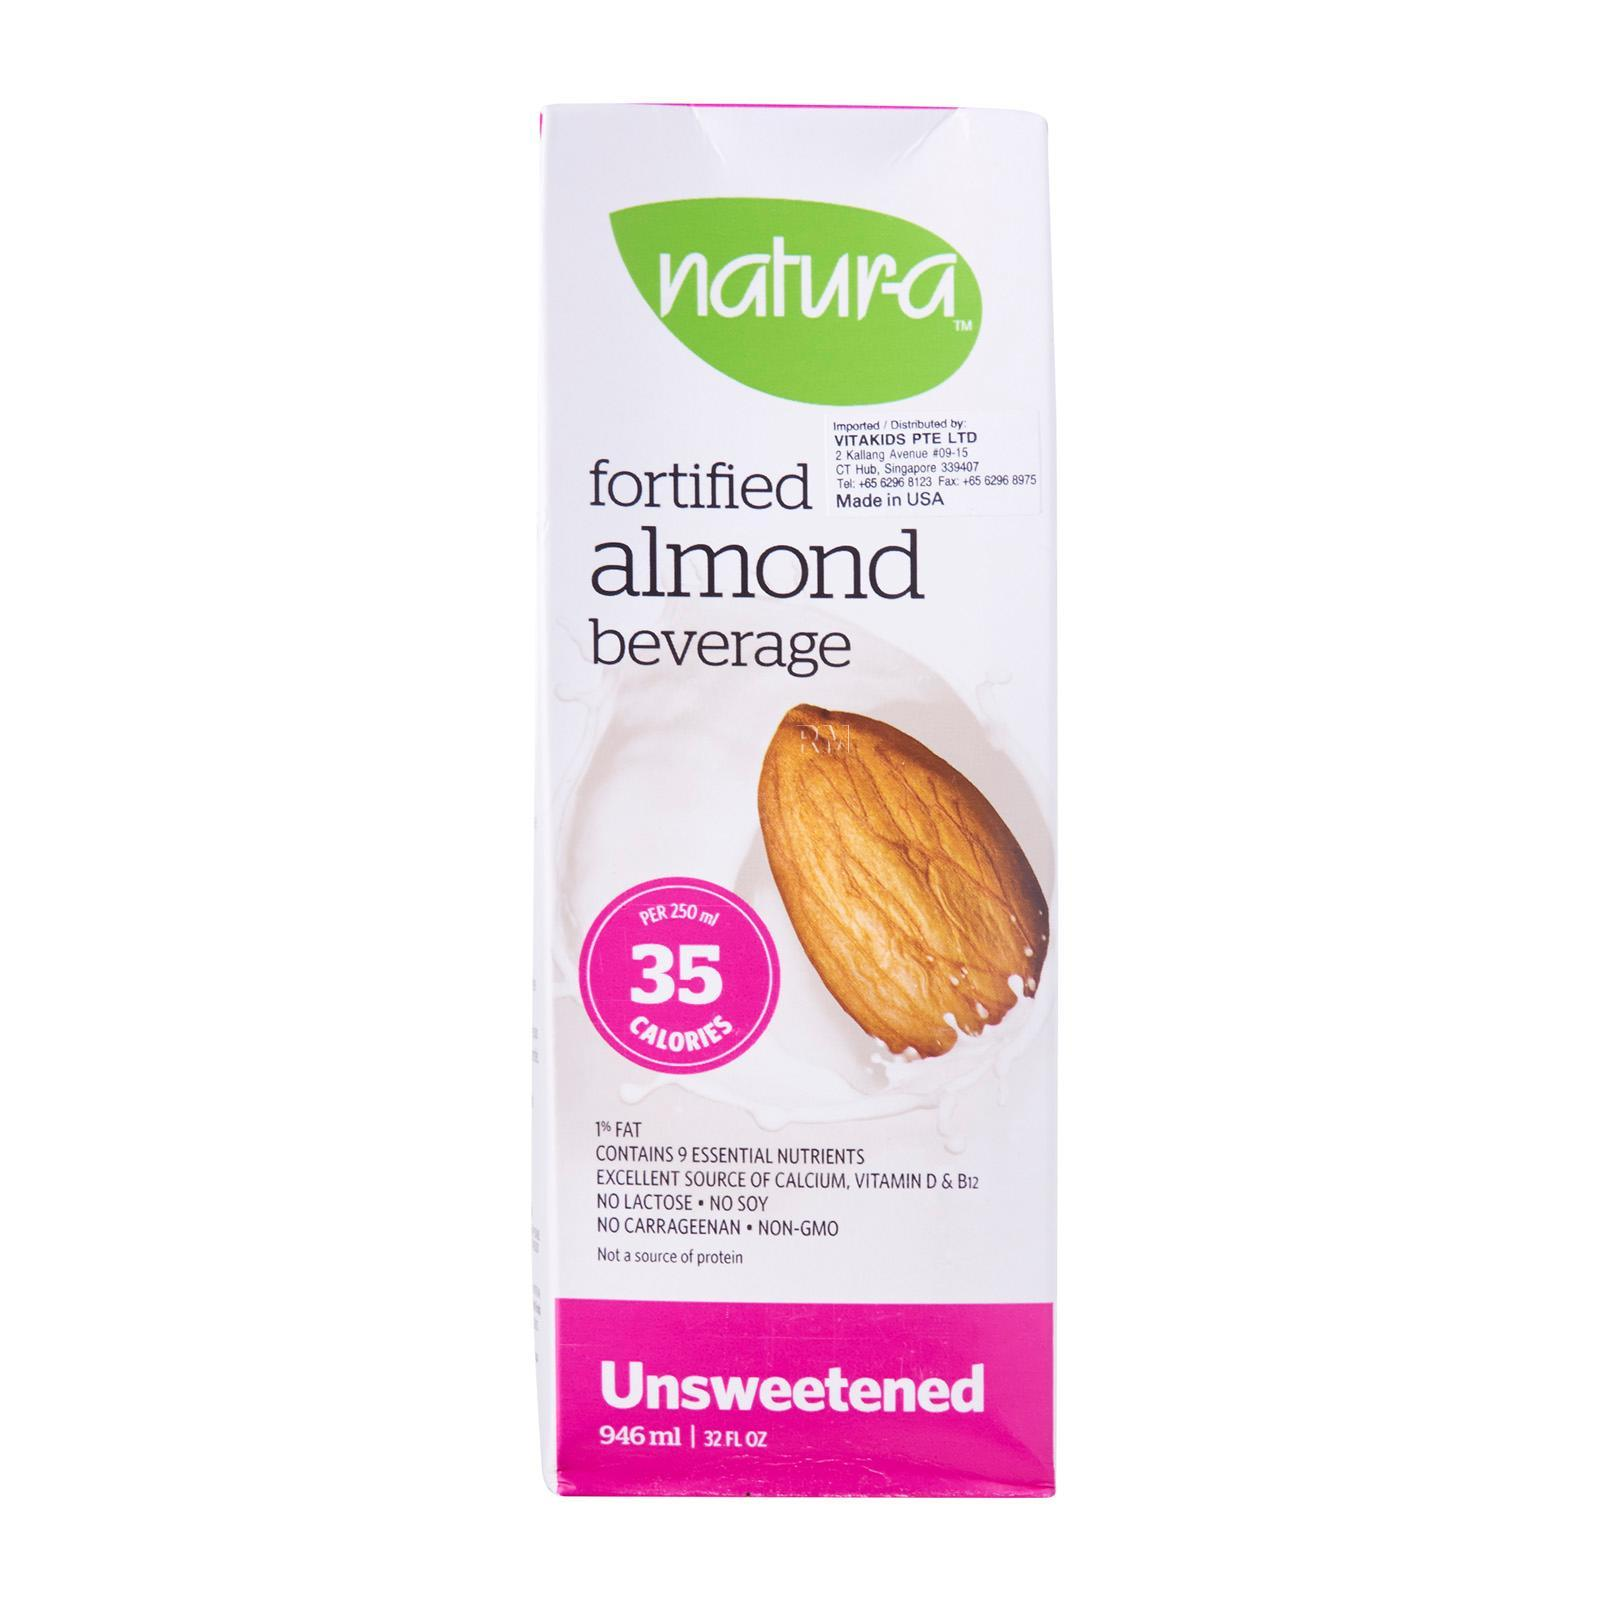 Natur-a Enriched Almond Beverage - Unsweetened Soy Dairy Free Milk